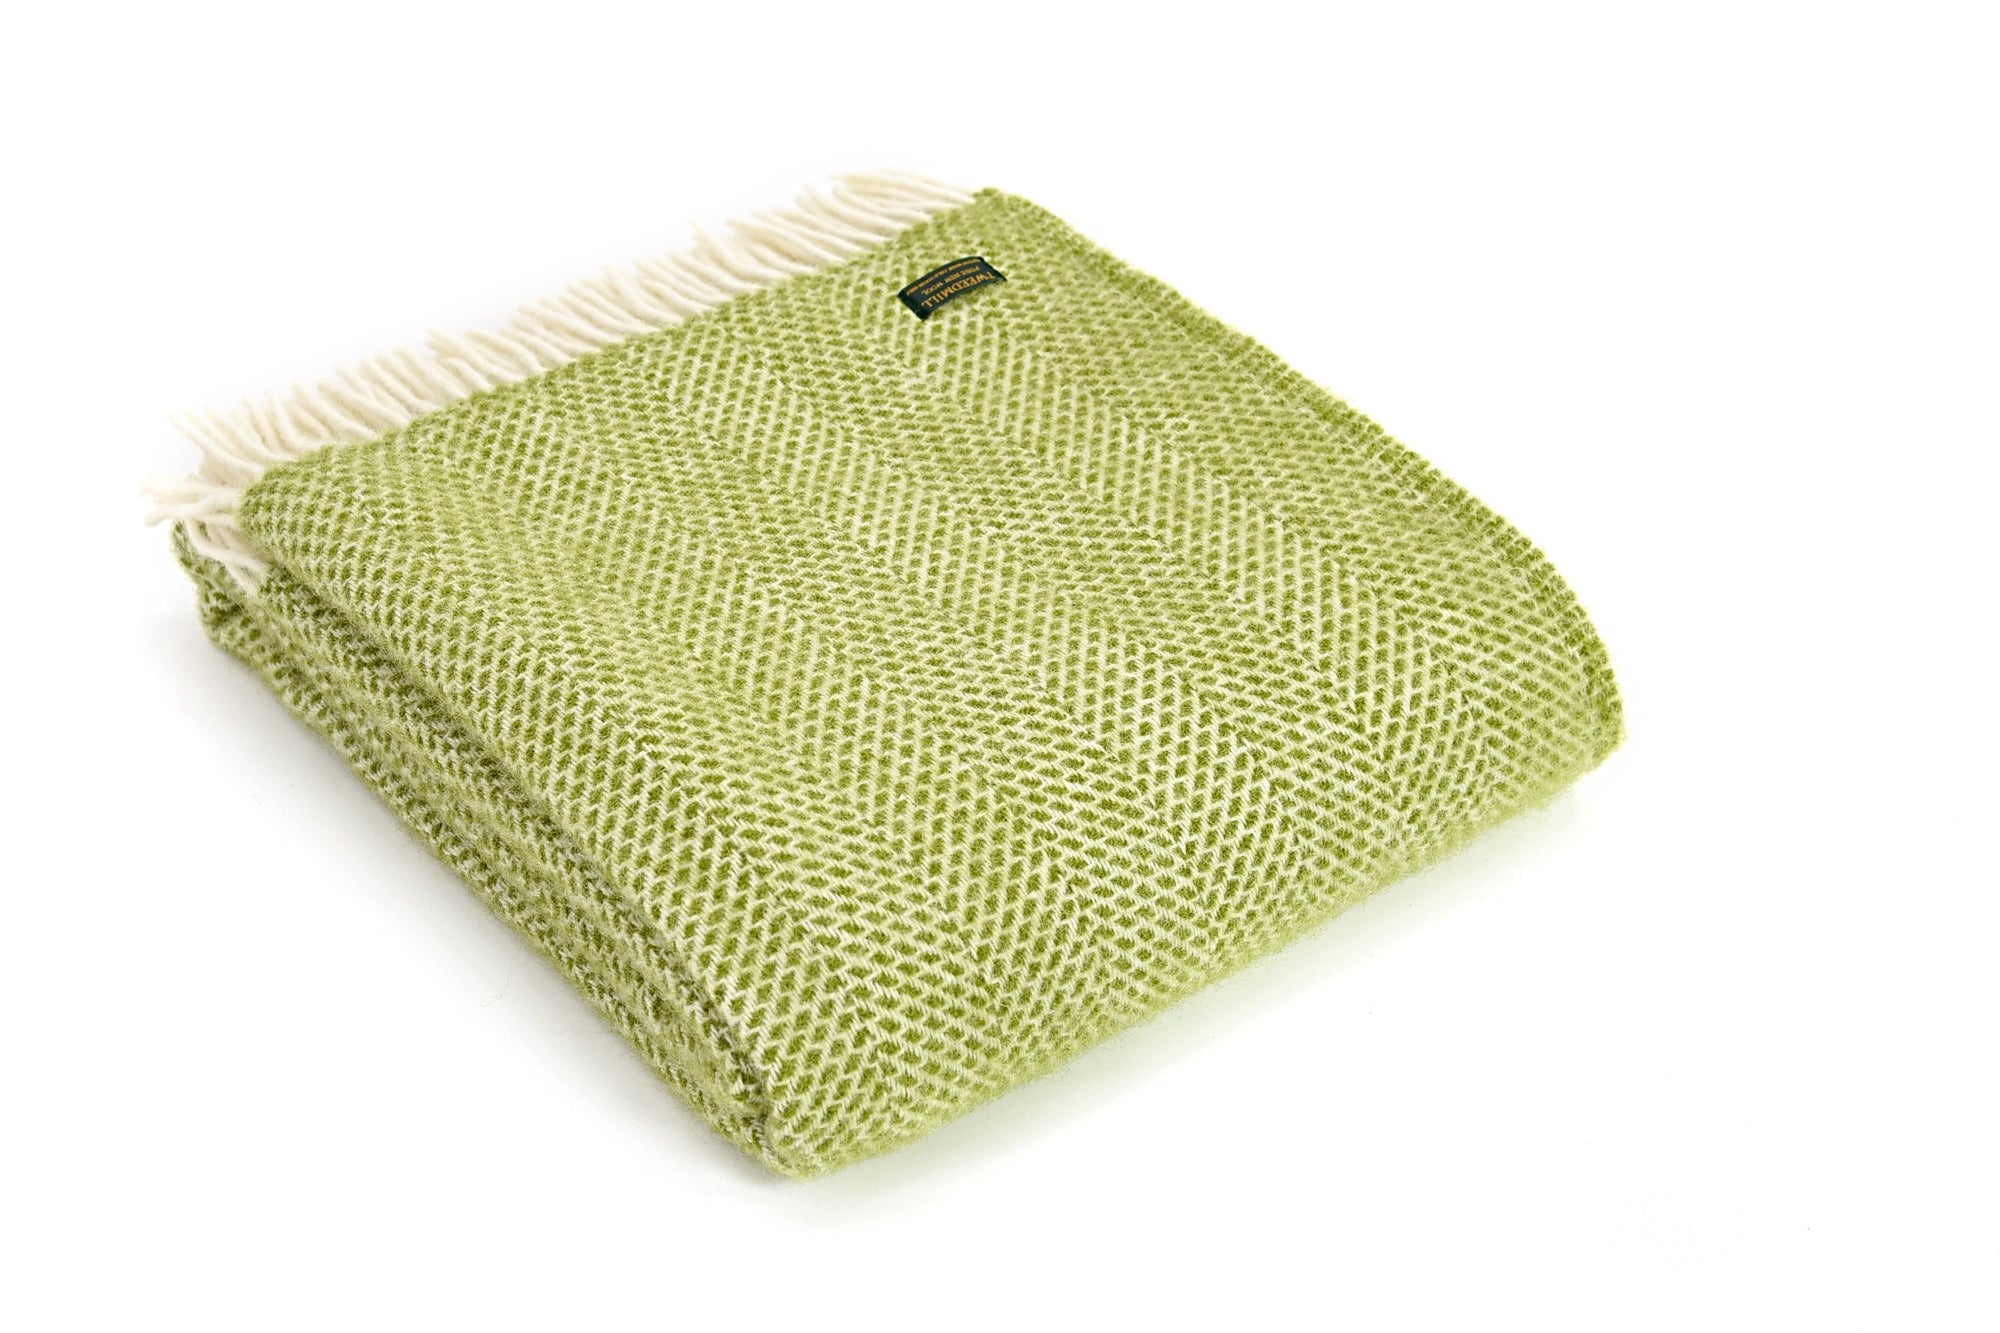 Tweedmill Beehive Kiwi pure wool throw